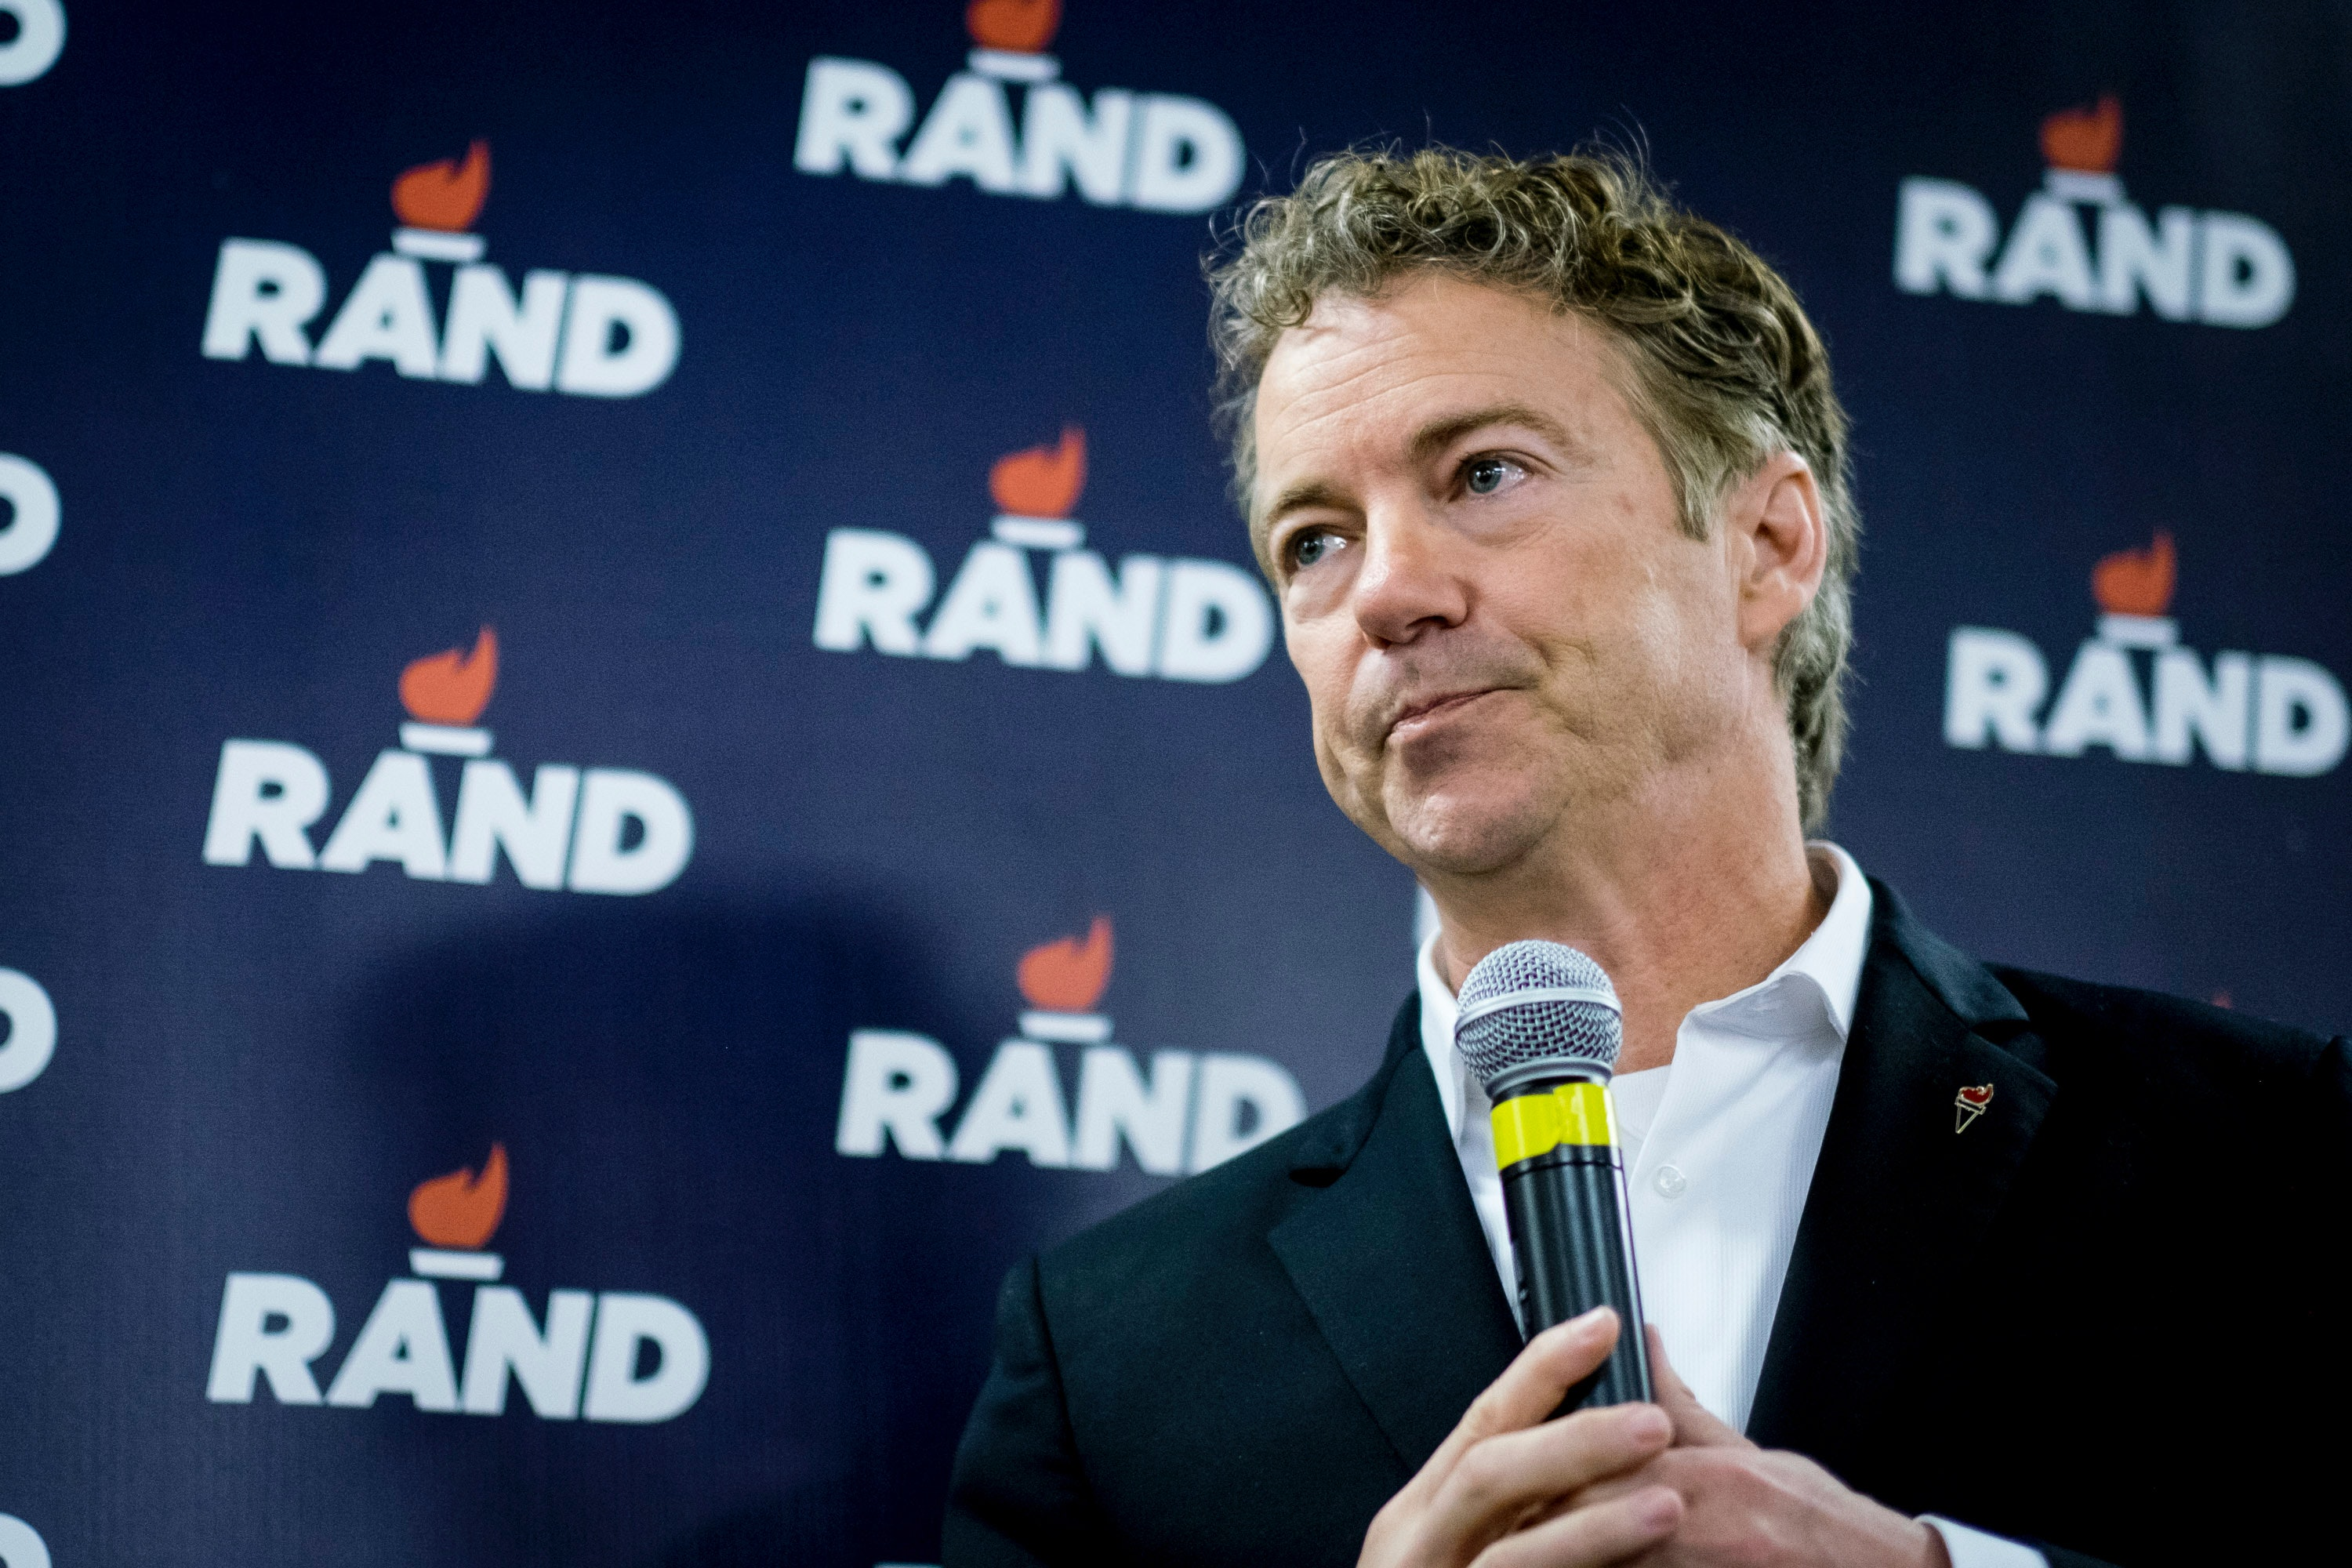 Obamacare Replacement: This is what Rand Paul is proposing after the repeal